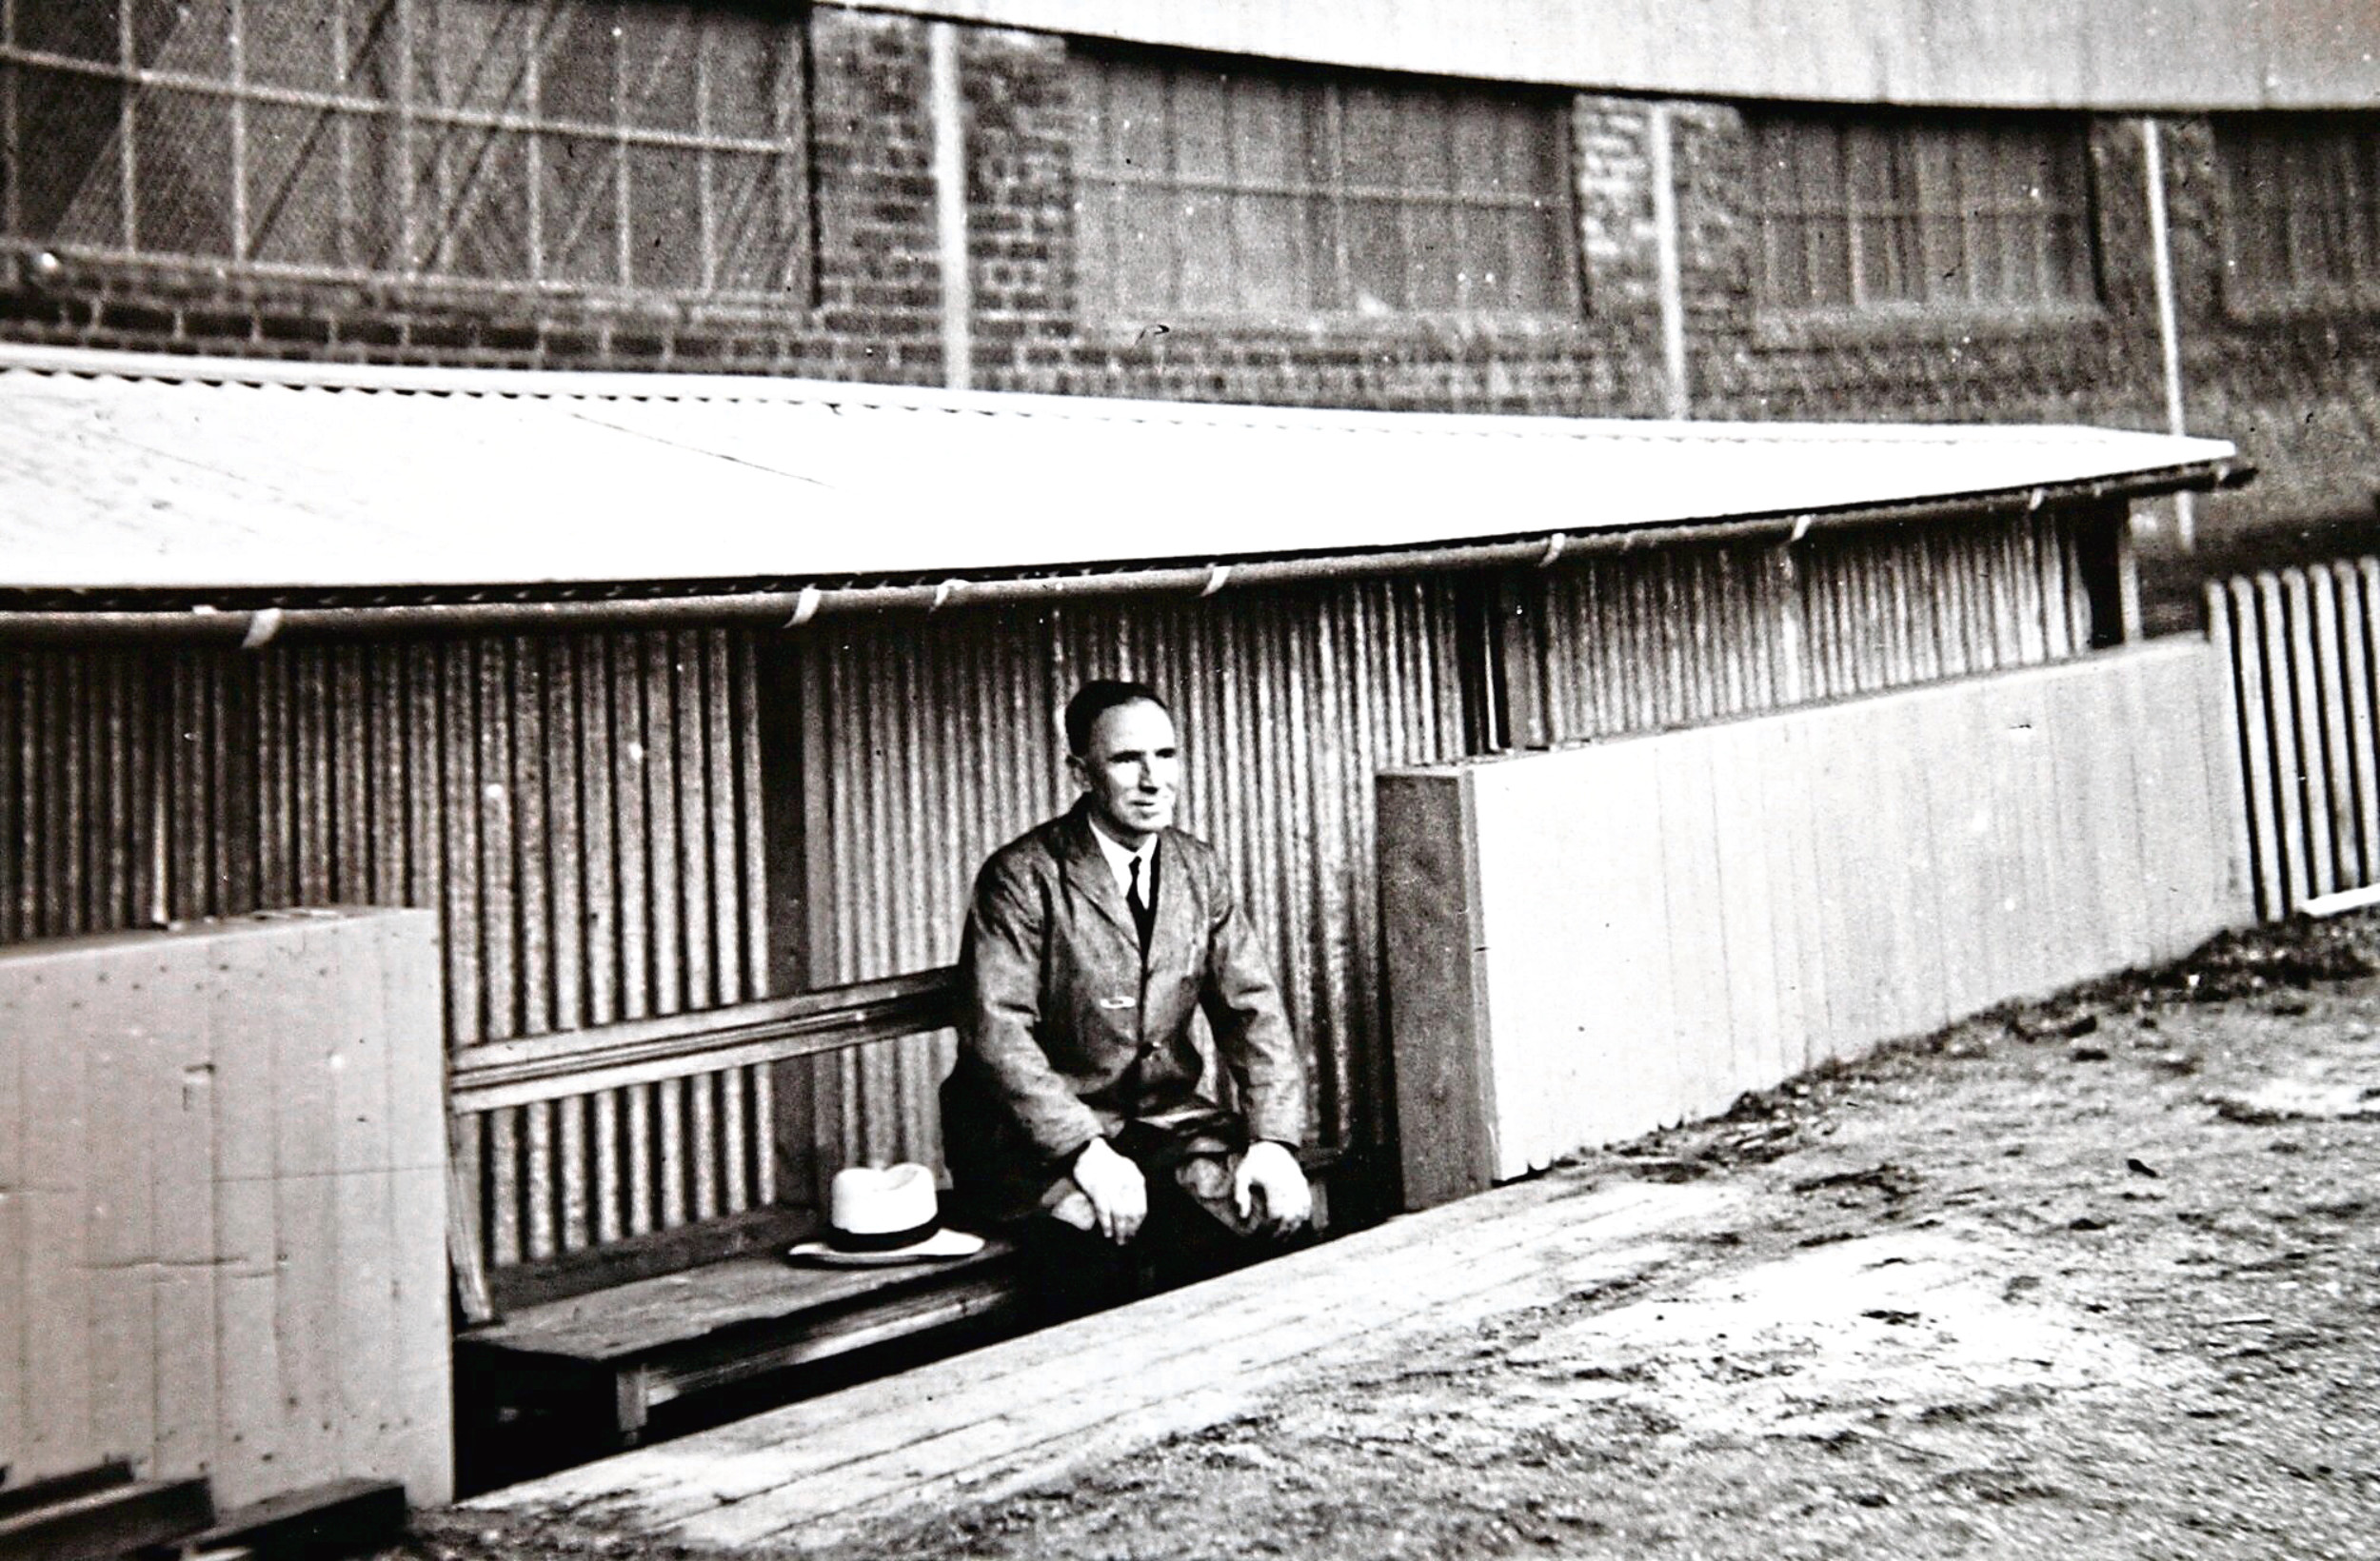 Donald Colman invented the dugout